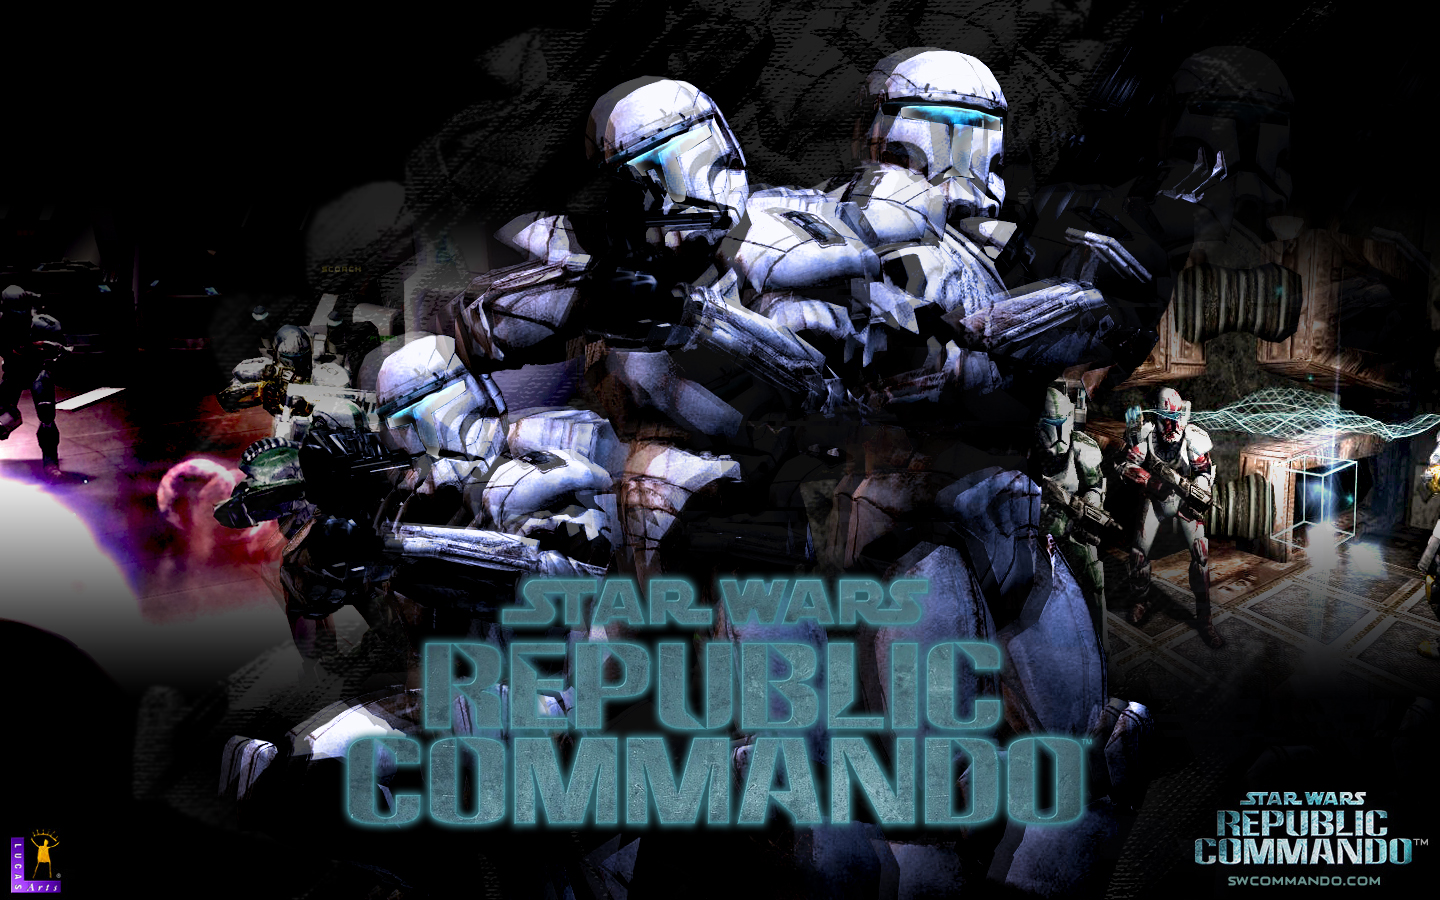 Commando 2 Wallpaper: Republic Commando Wallpaper3 By Juniorjedi On DeviantART